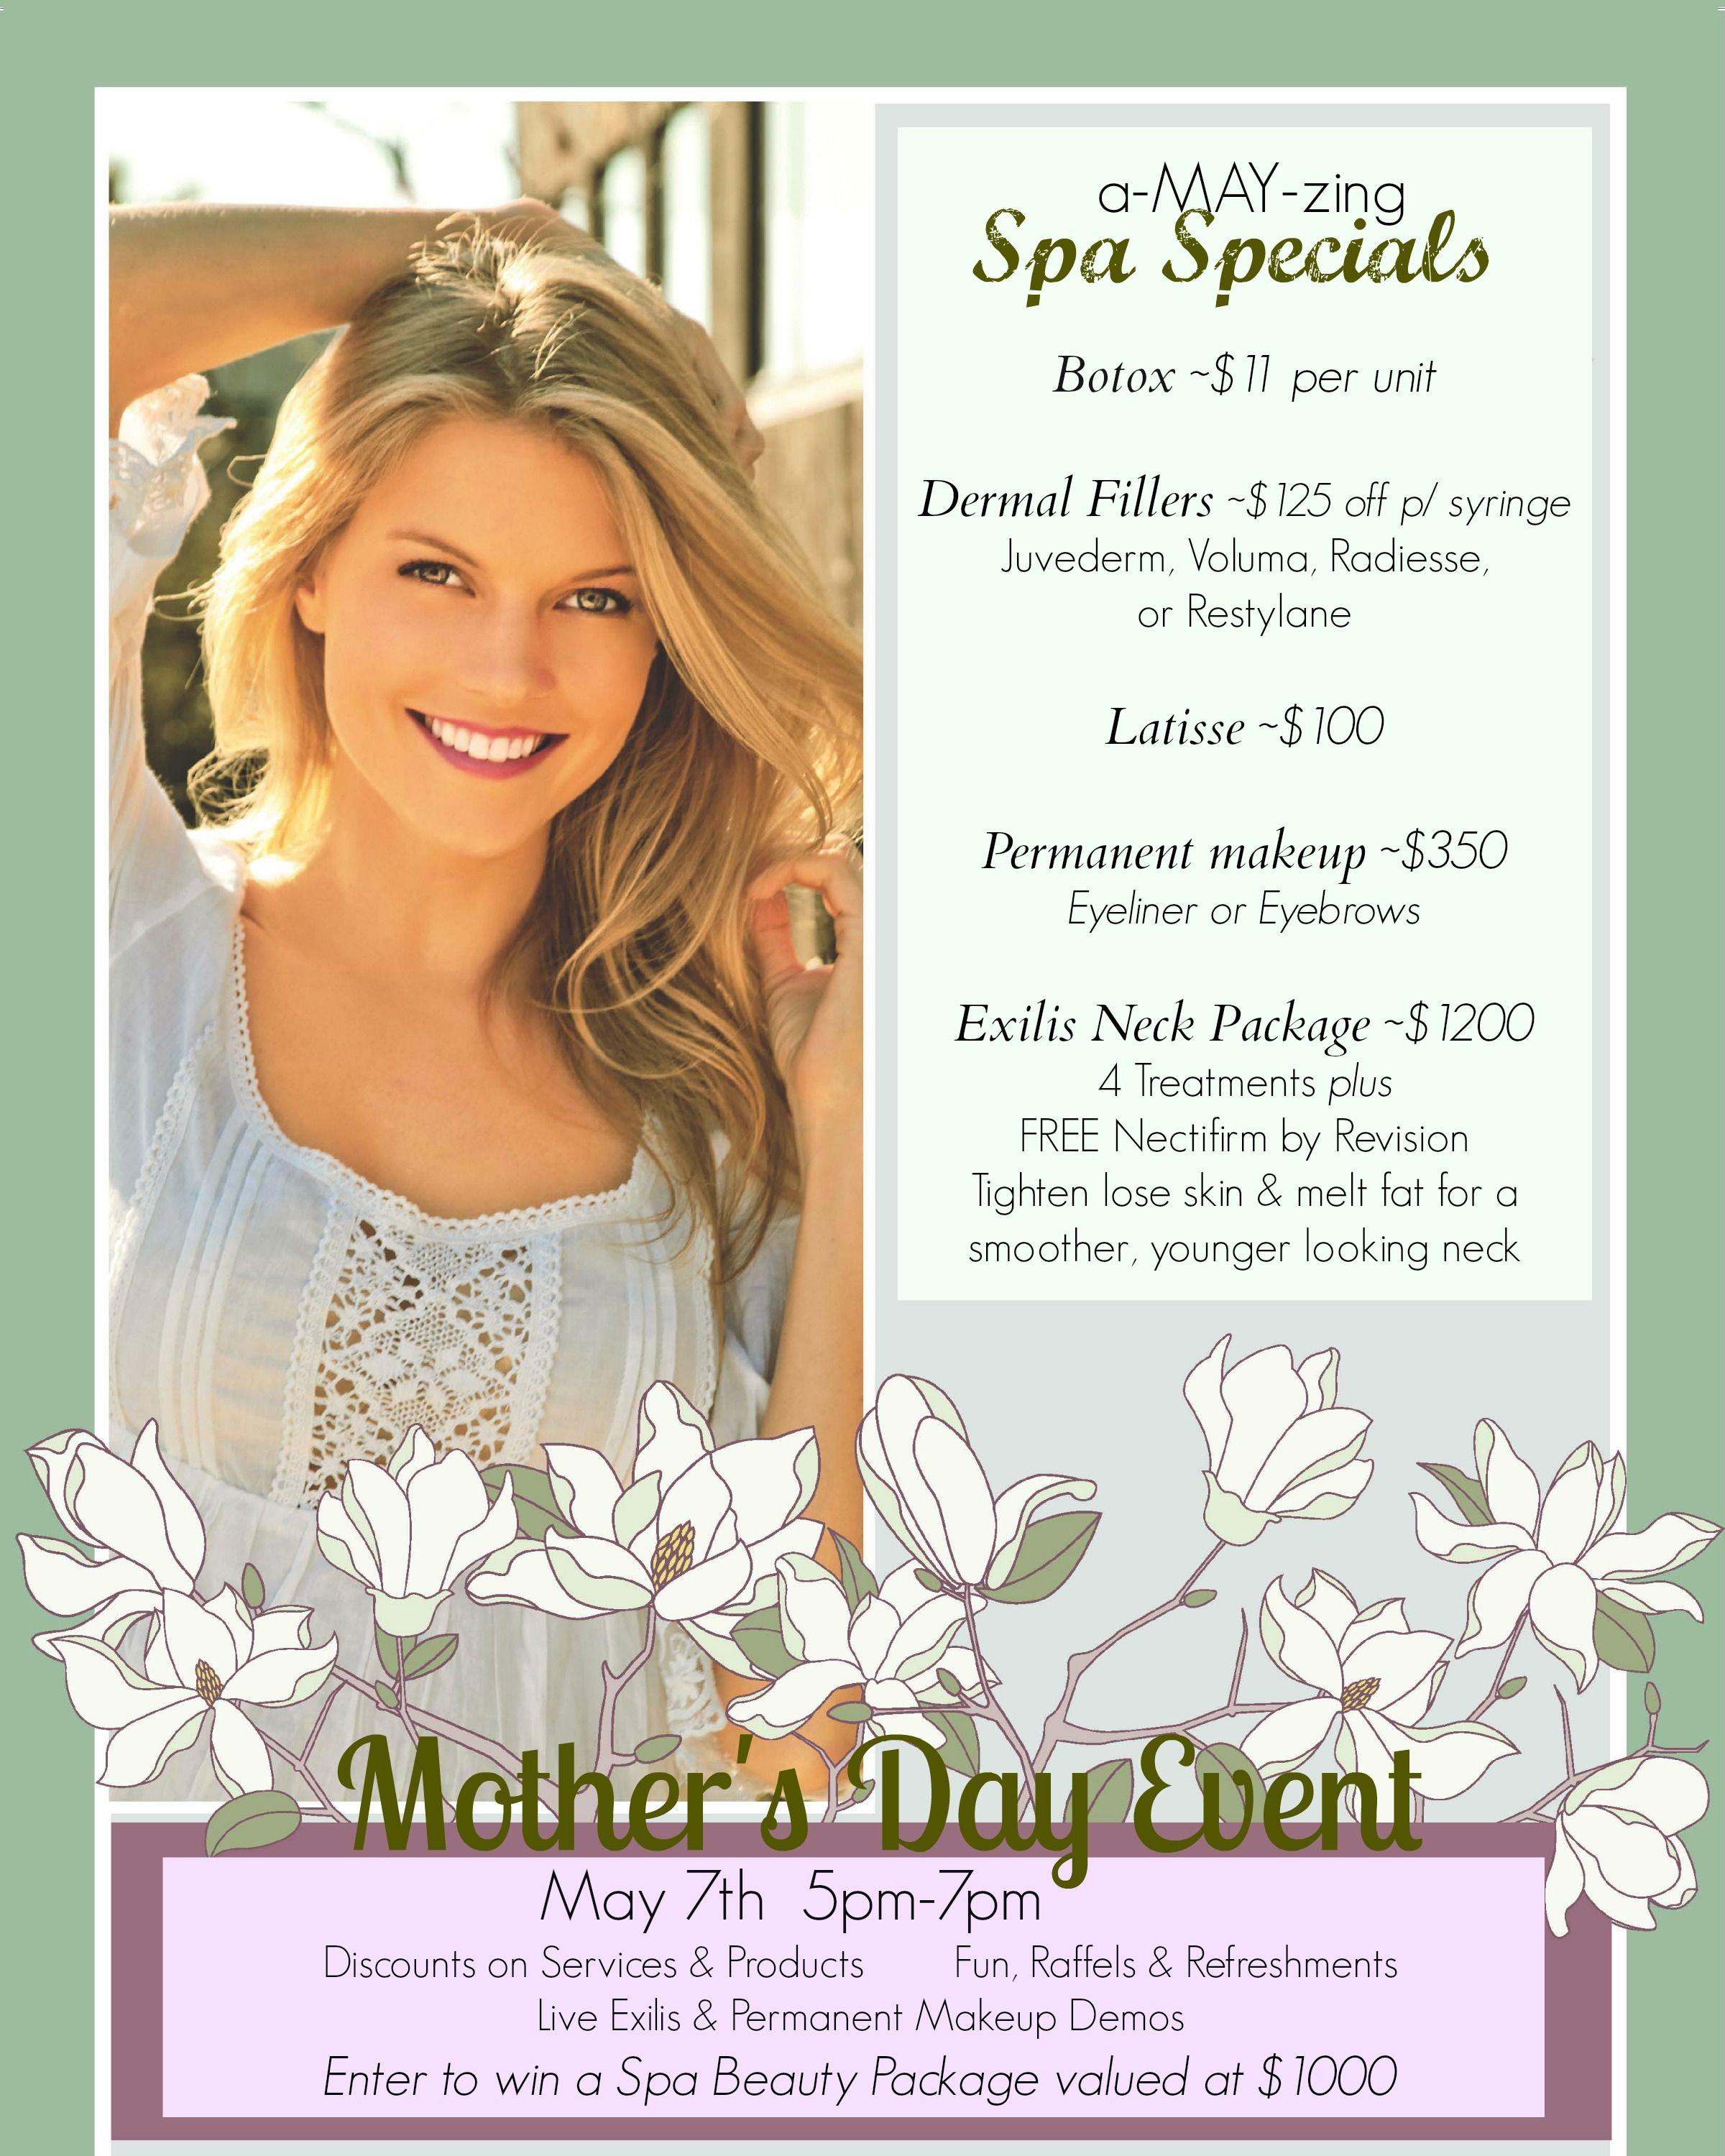 a-MAY-zing Spa Specials & Mother's Day Event at Charleston ...